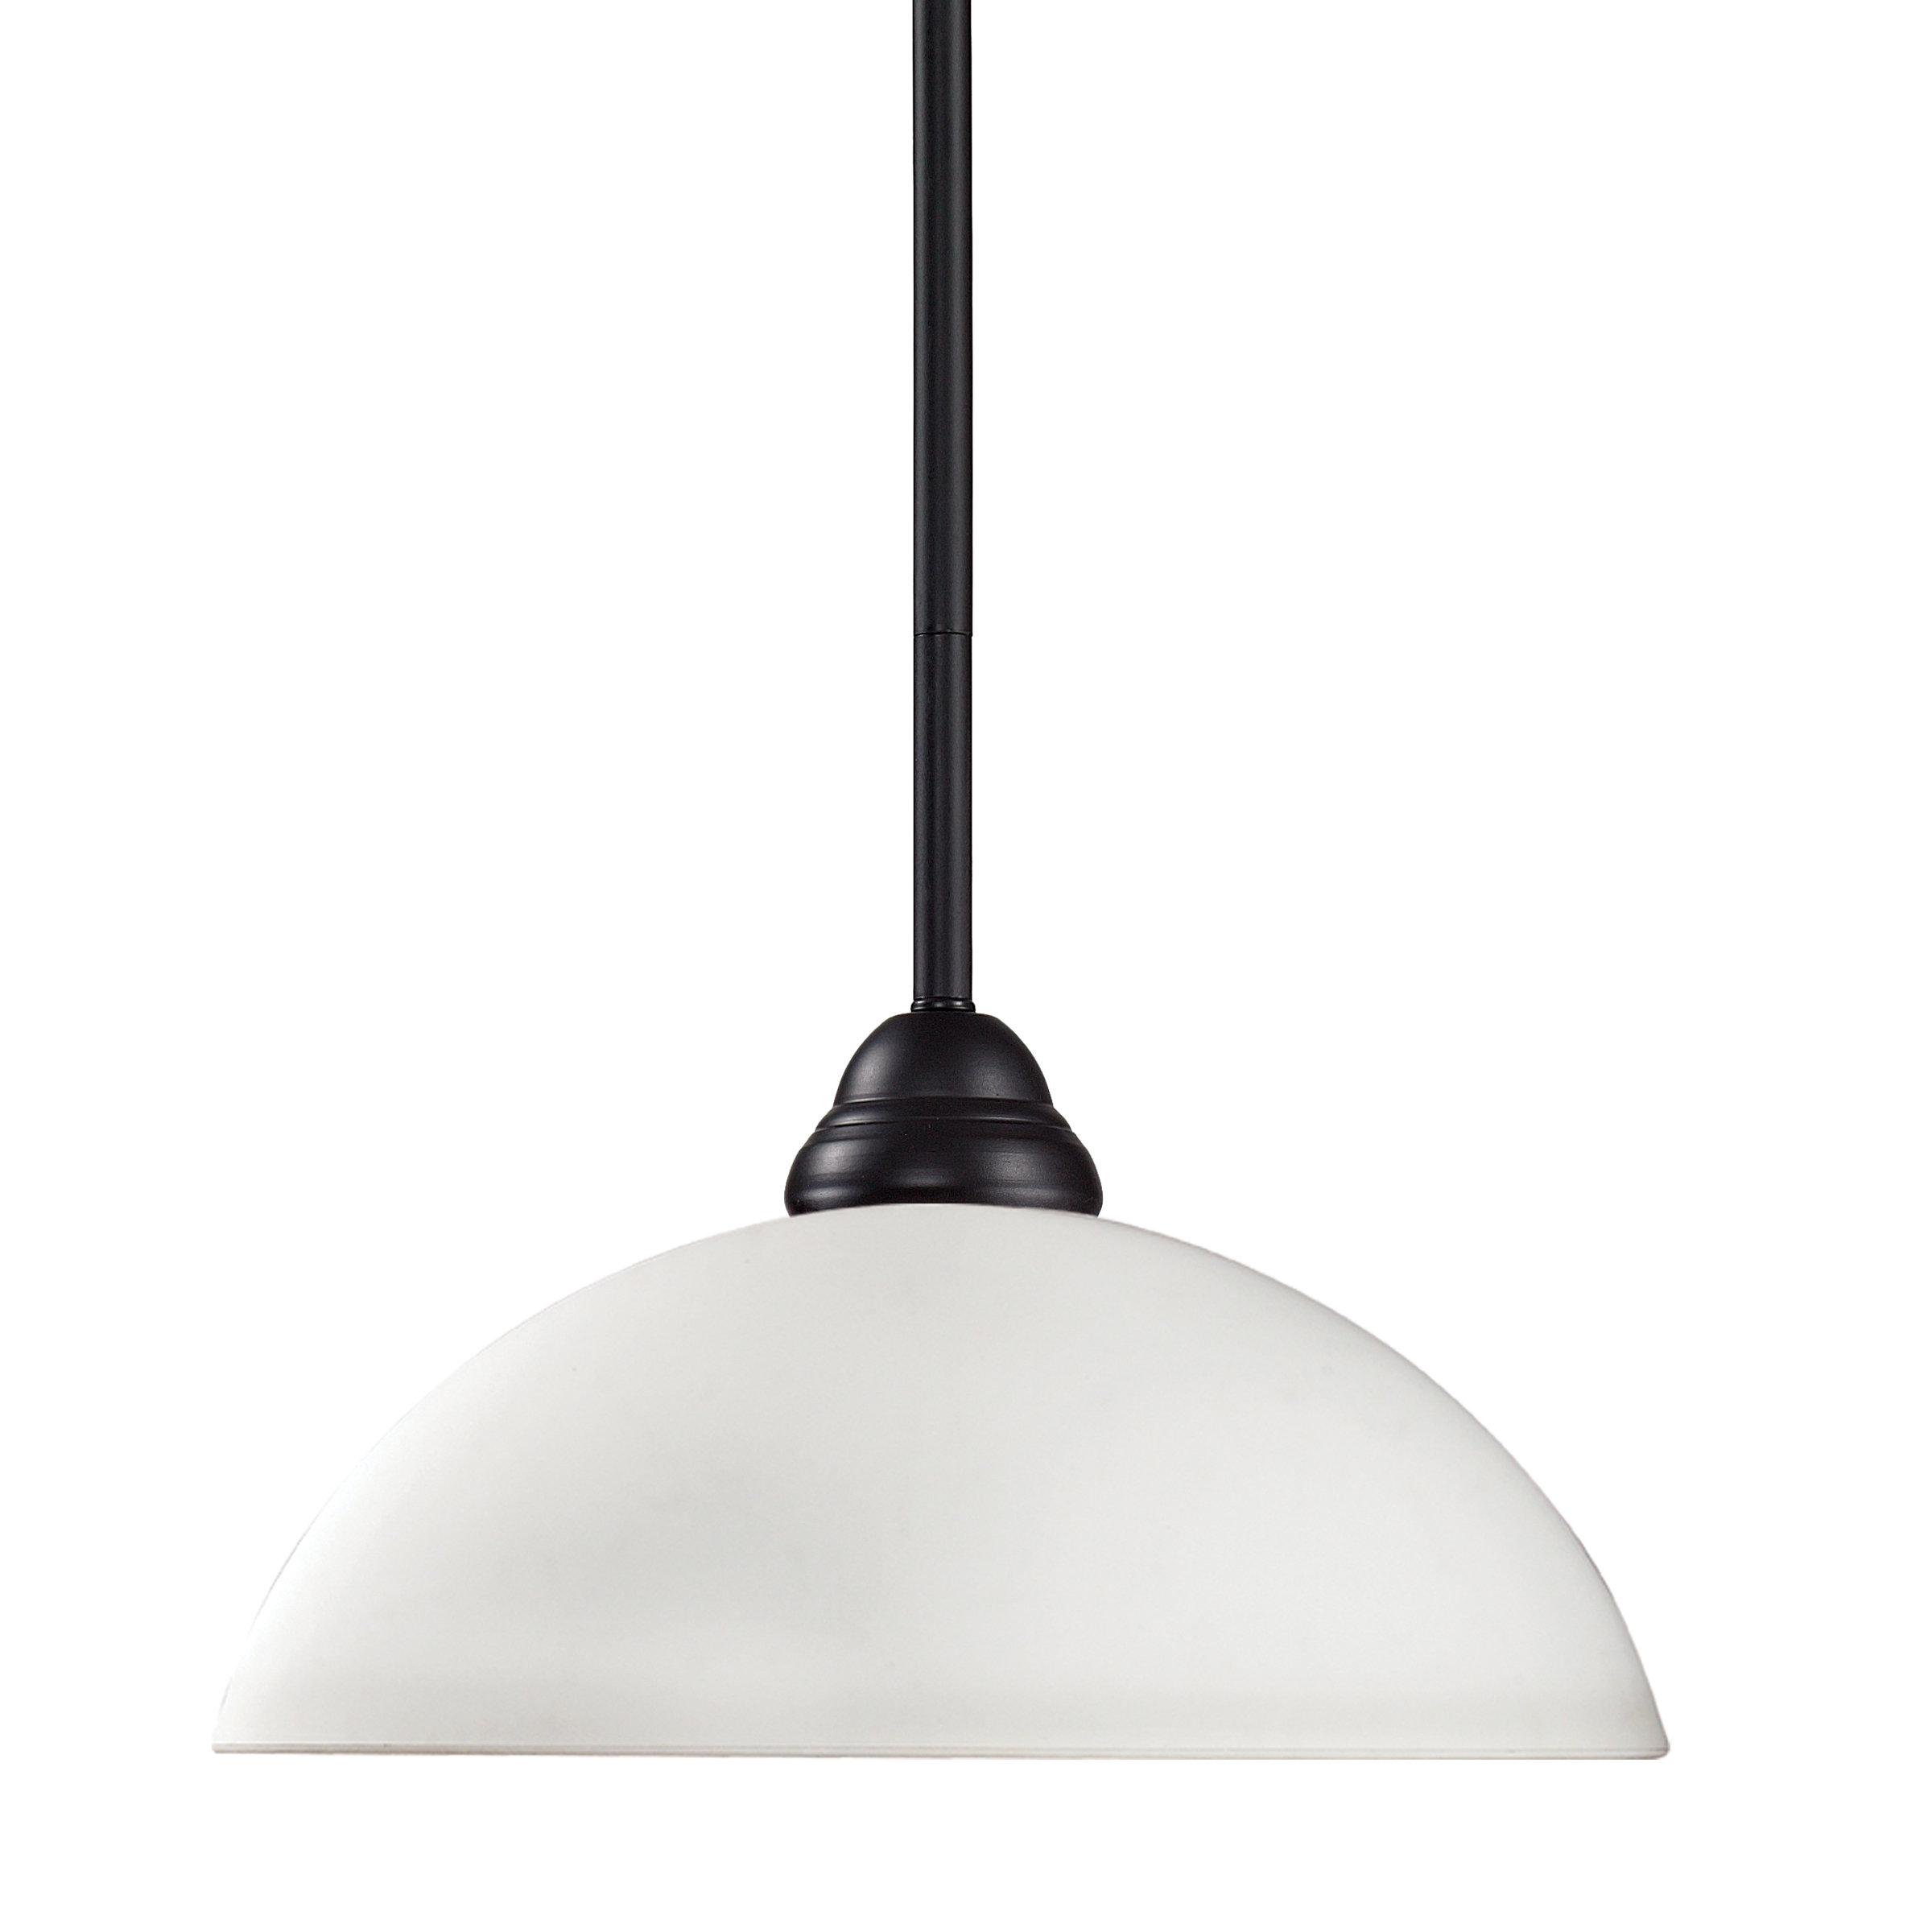 Brynlee 1 Light Single Dome Pendant With Favorite Southlake 1 Light Single Dome Pendants (View 9 of 25)